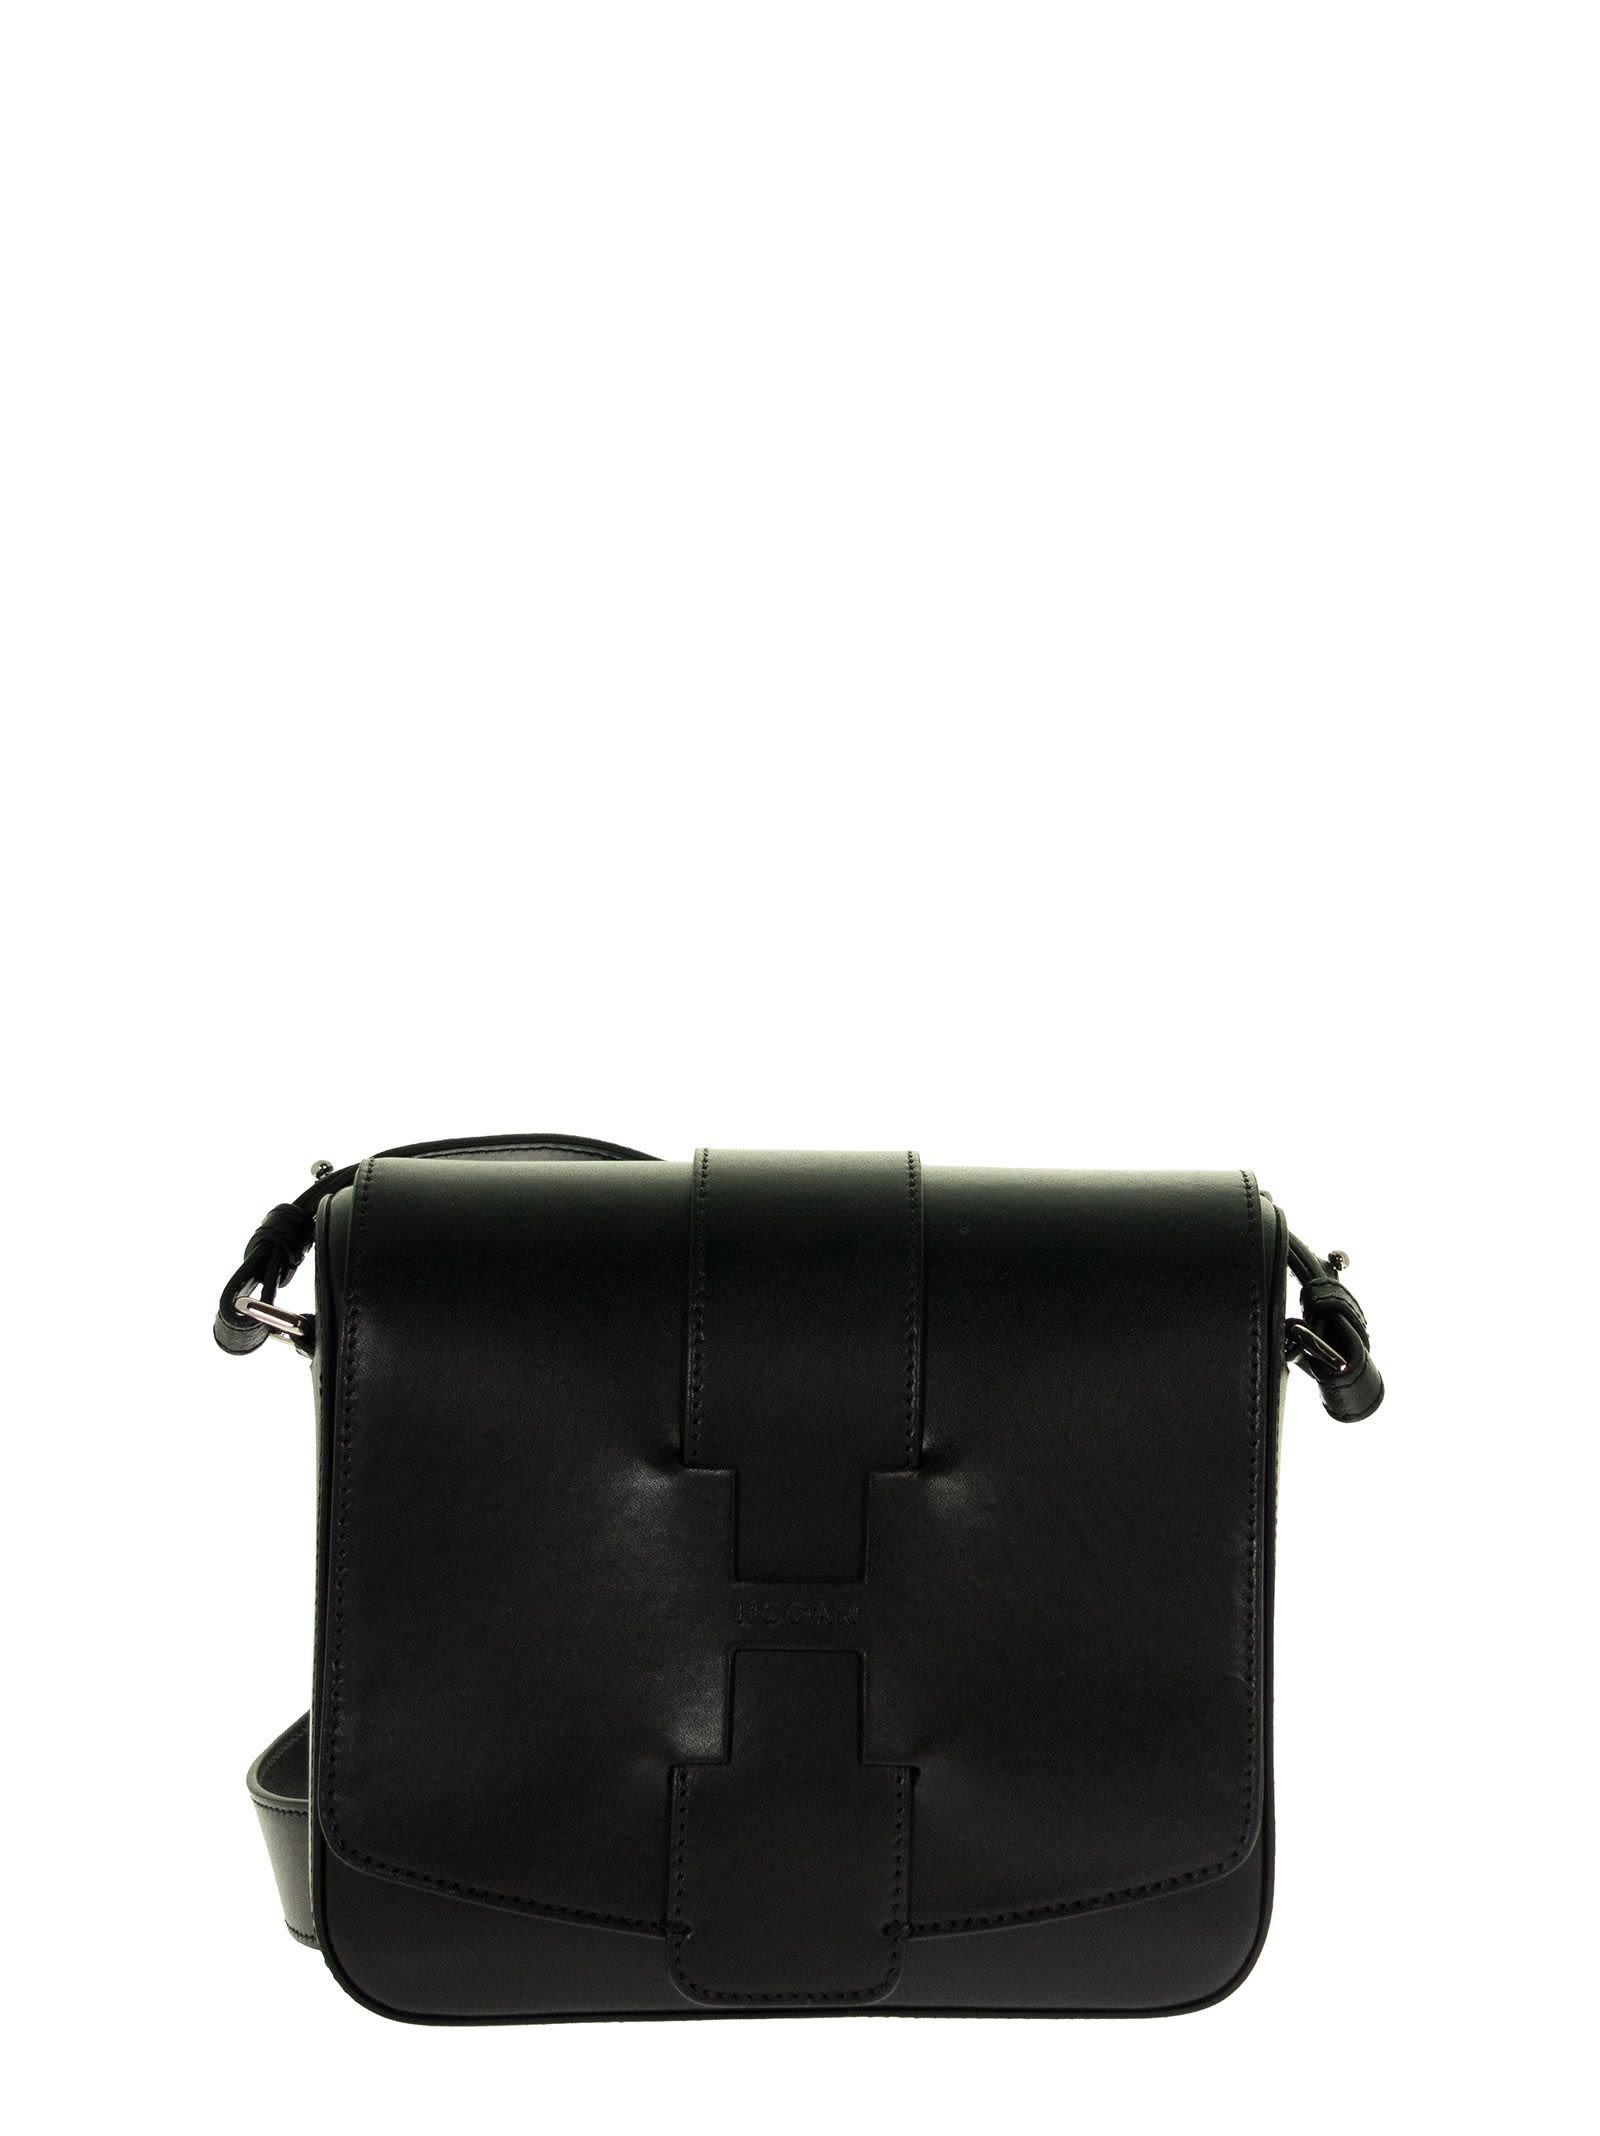 Hogan CROSSBODY BAG MINI